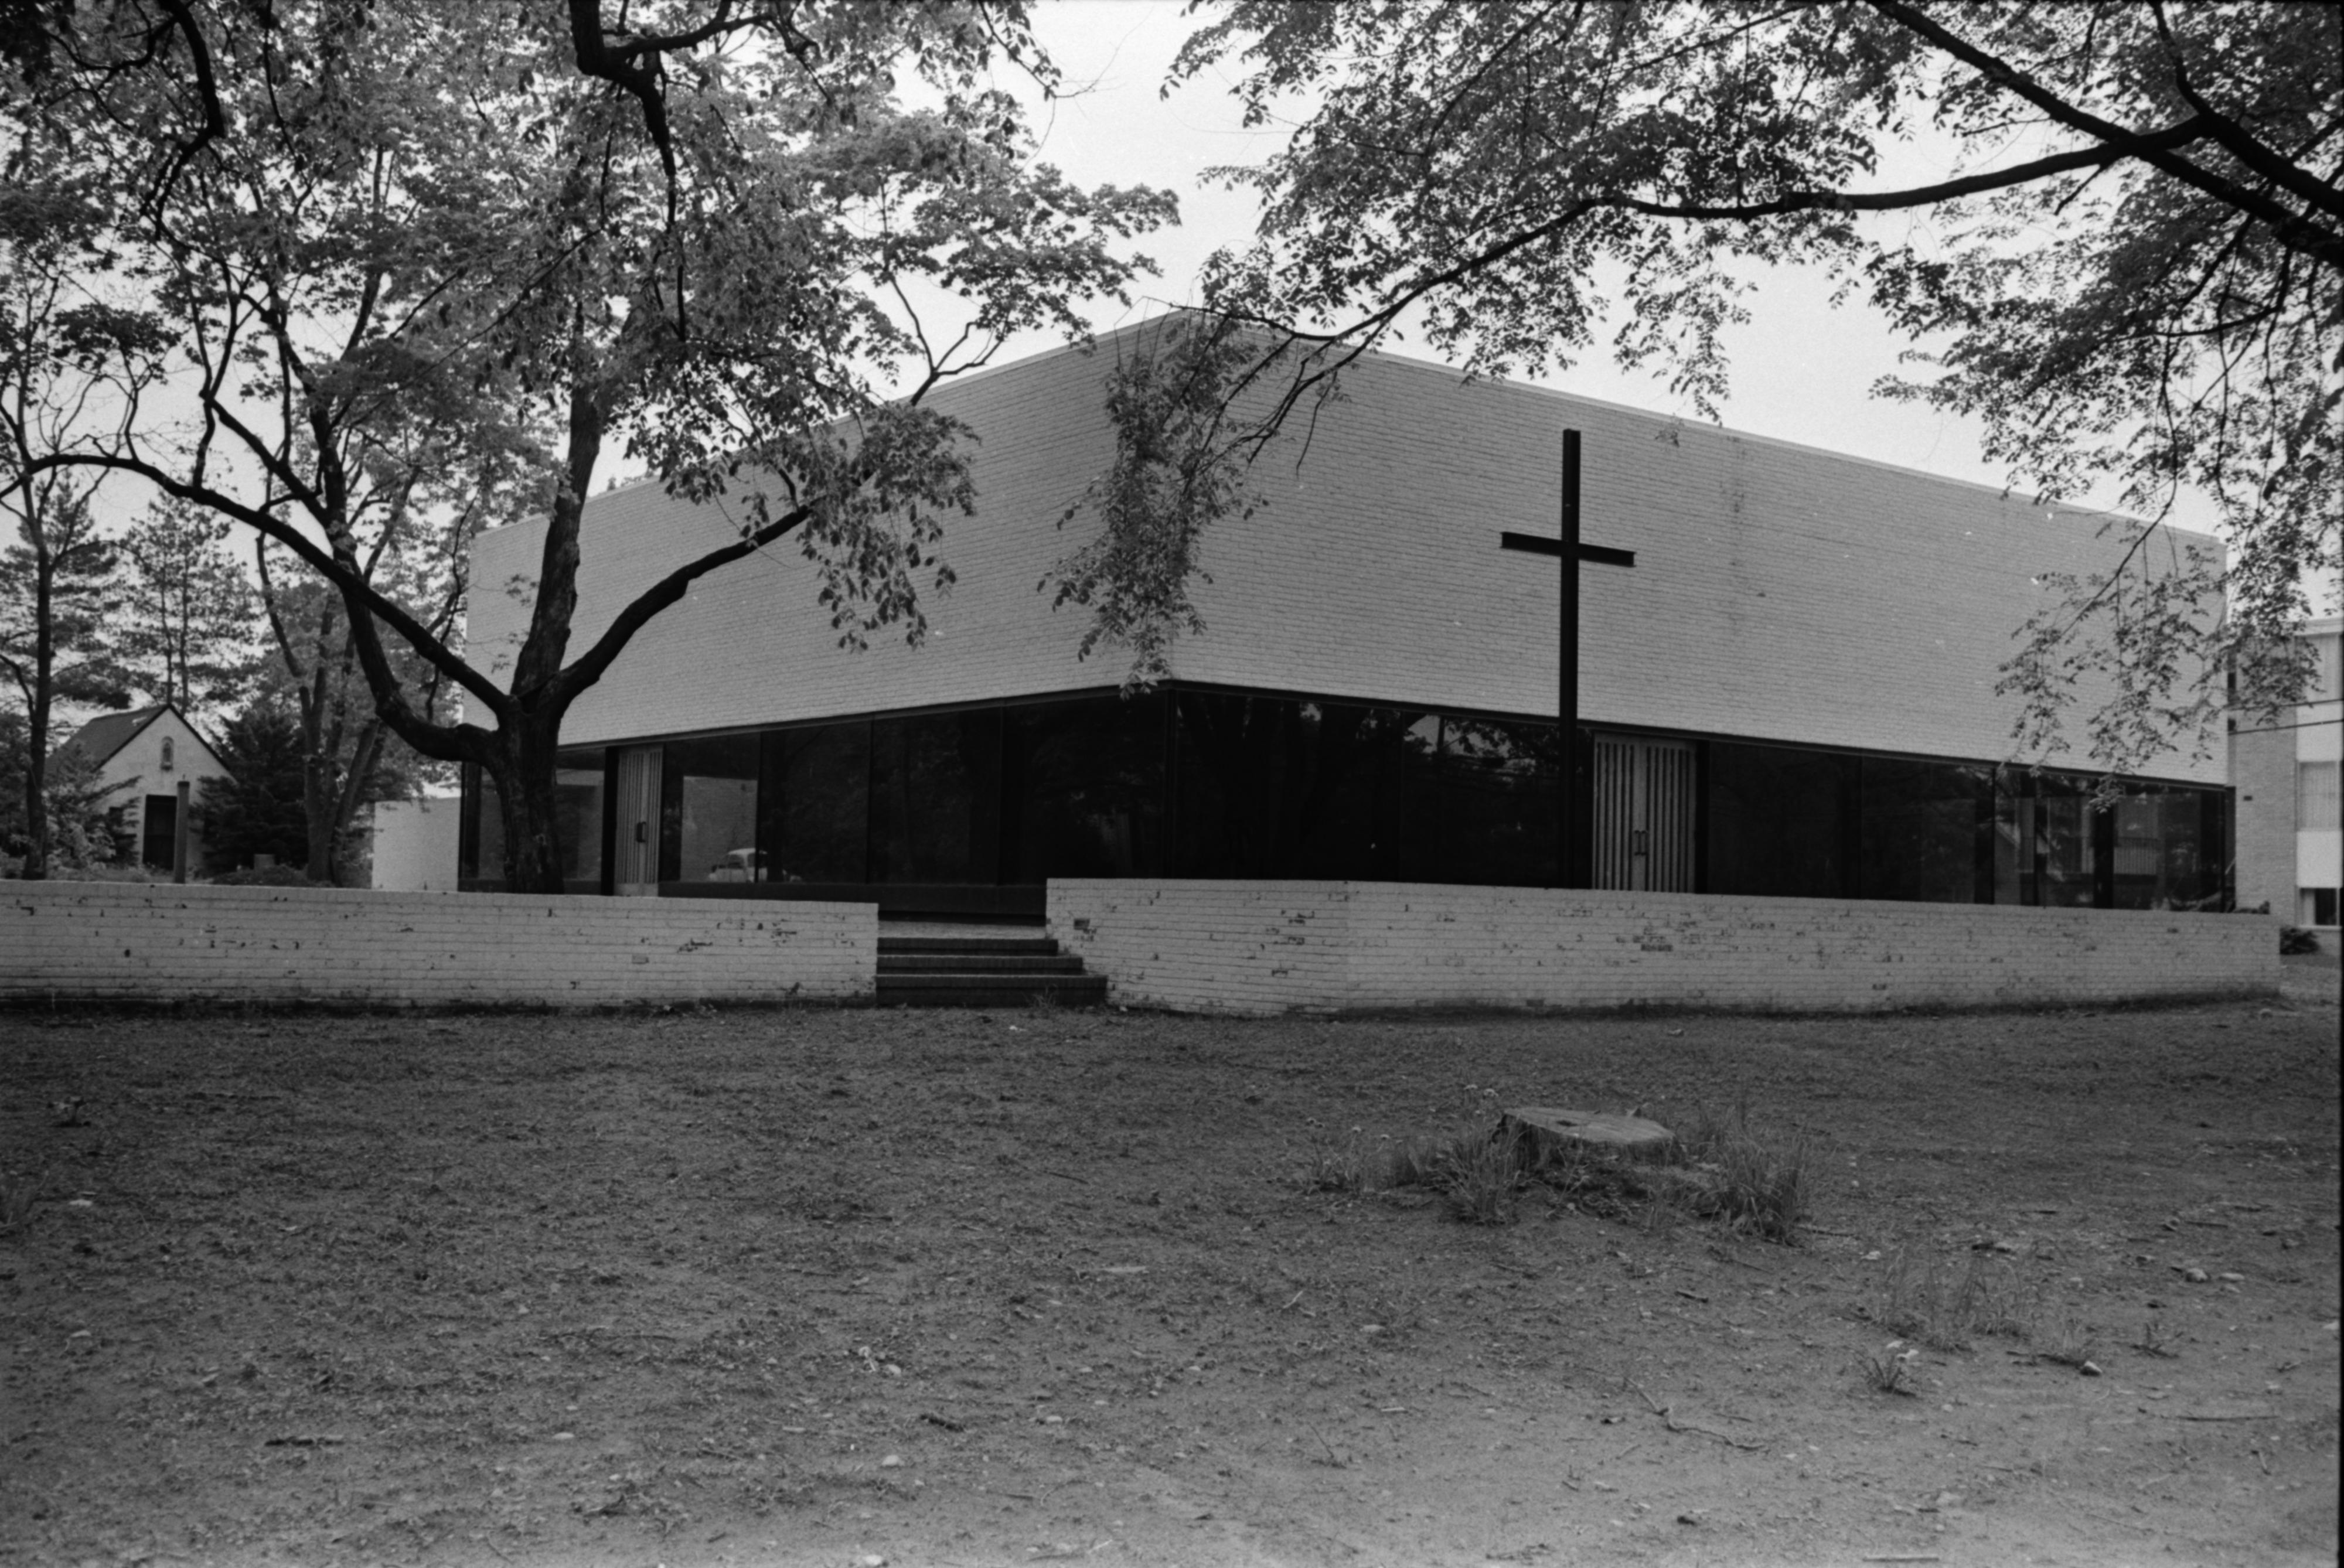 St. Clare of Assisi Episcopal Church, May 1969 image